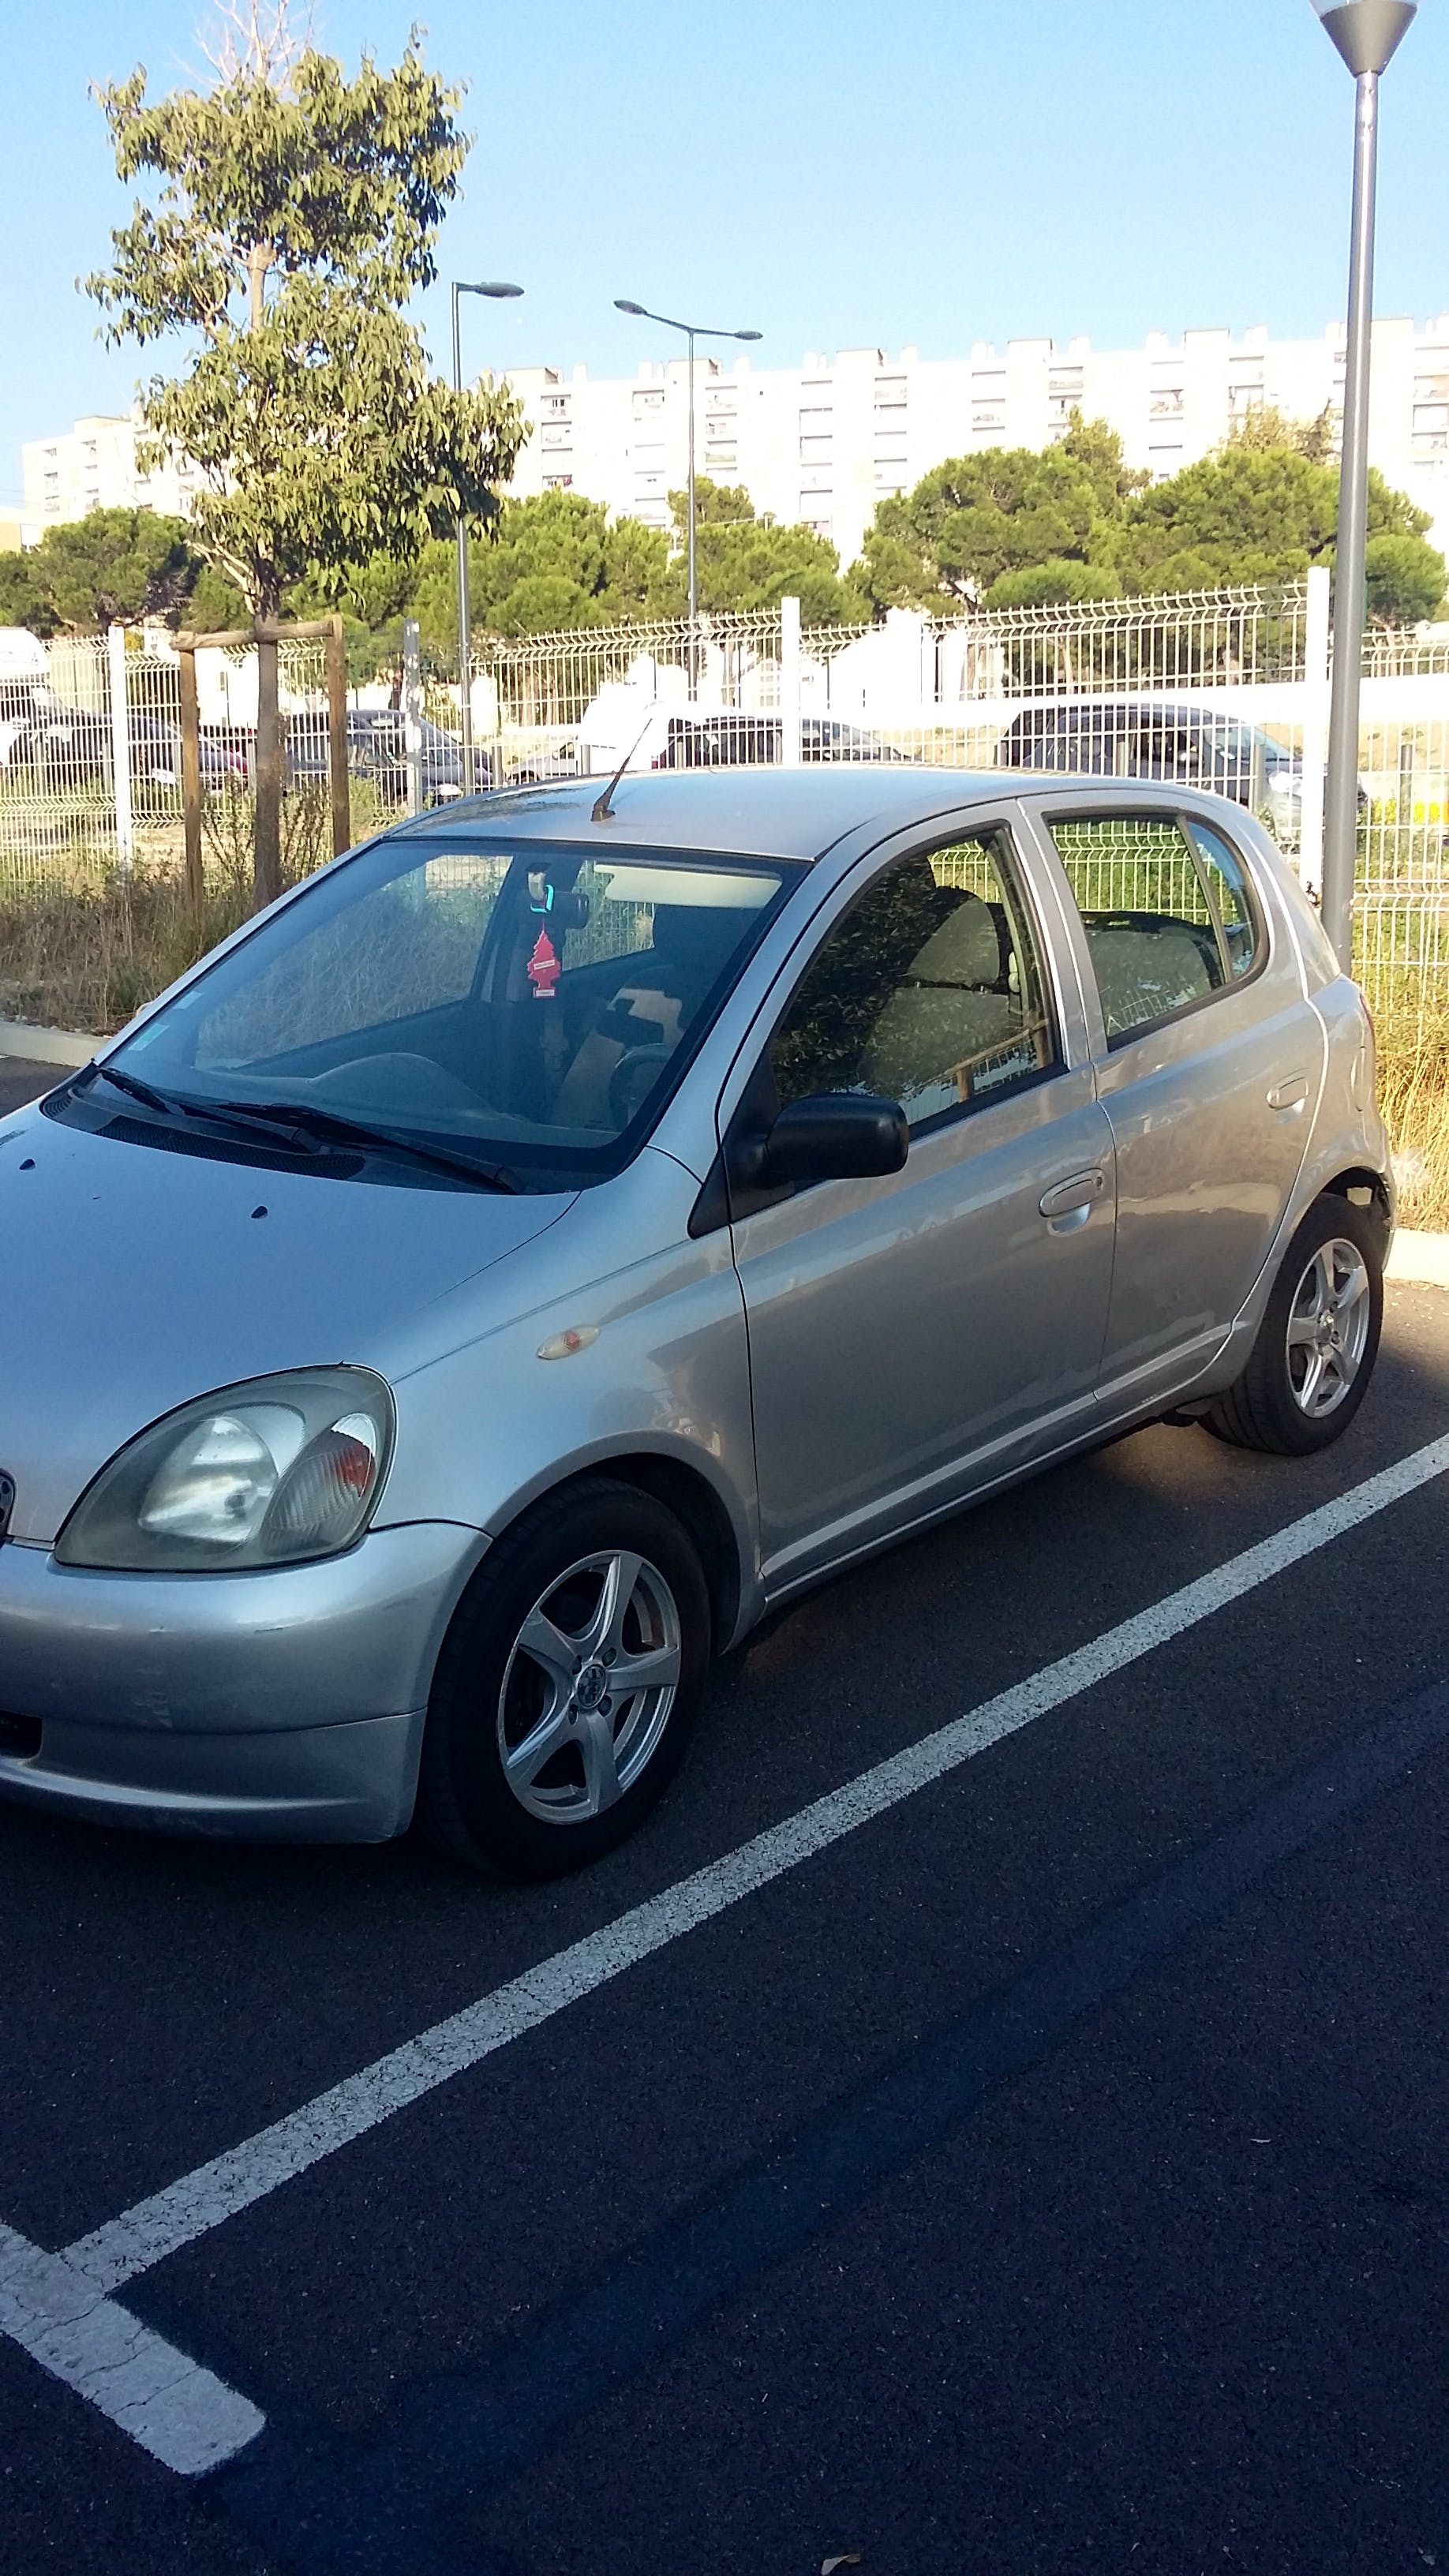 Toyota Yaris, 2002, Essence